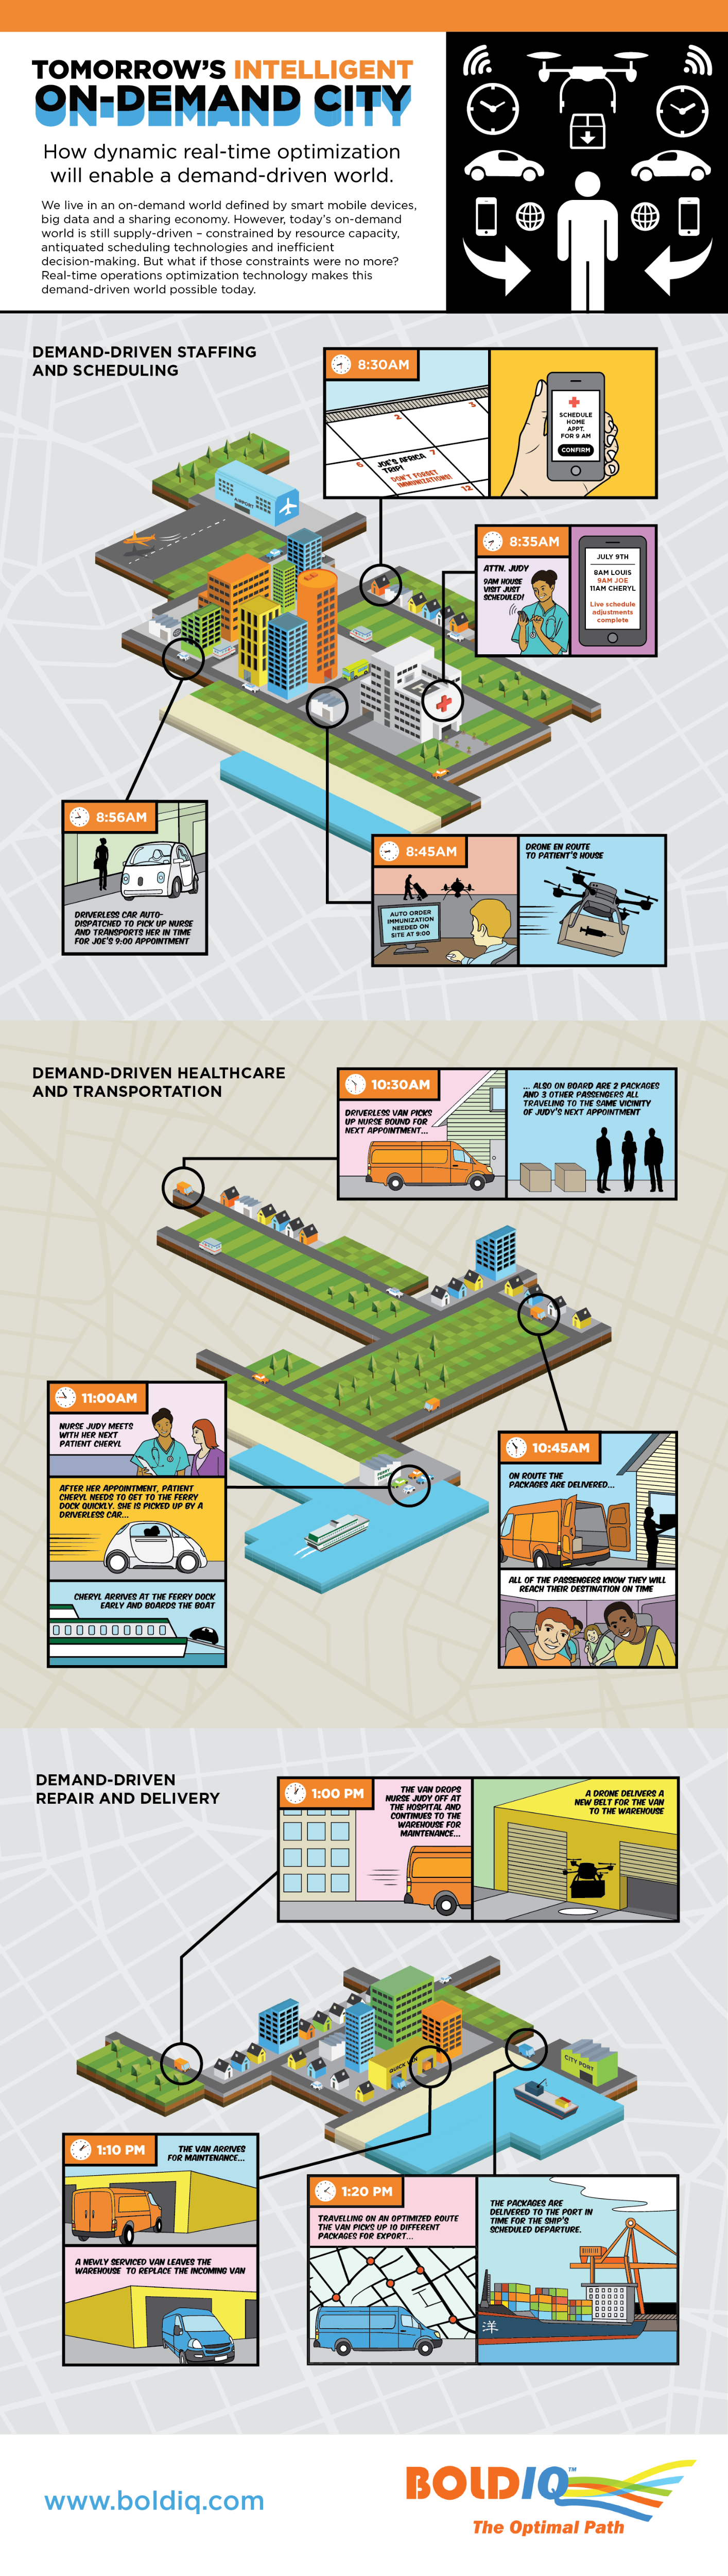 Tomorrow's Intelligent On-Demand City infographic